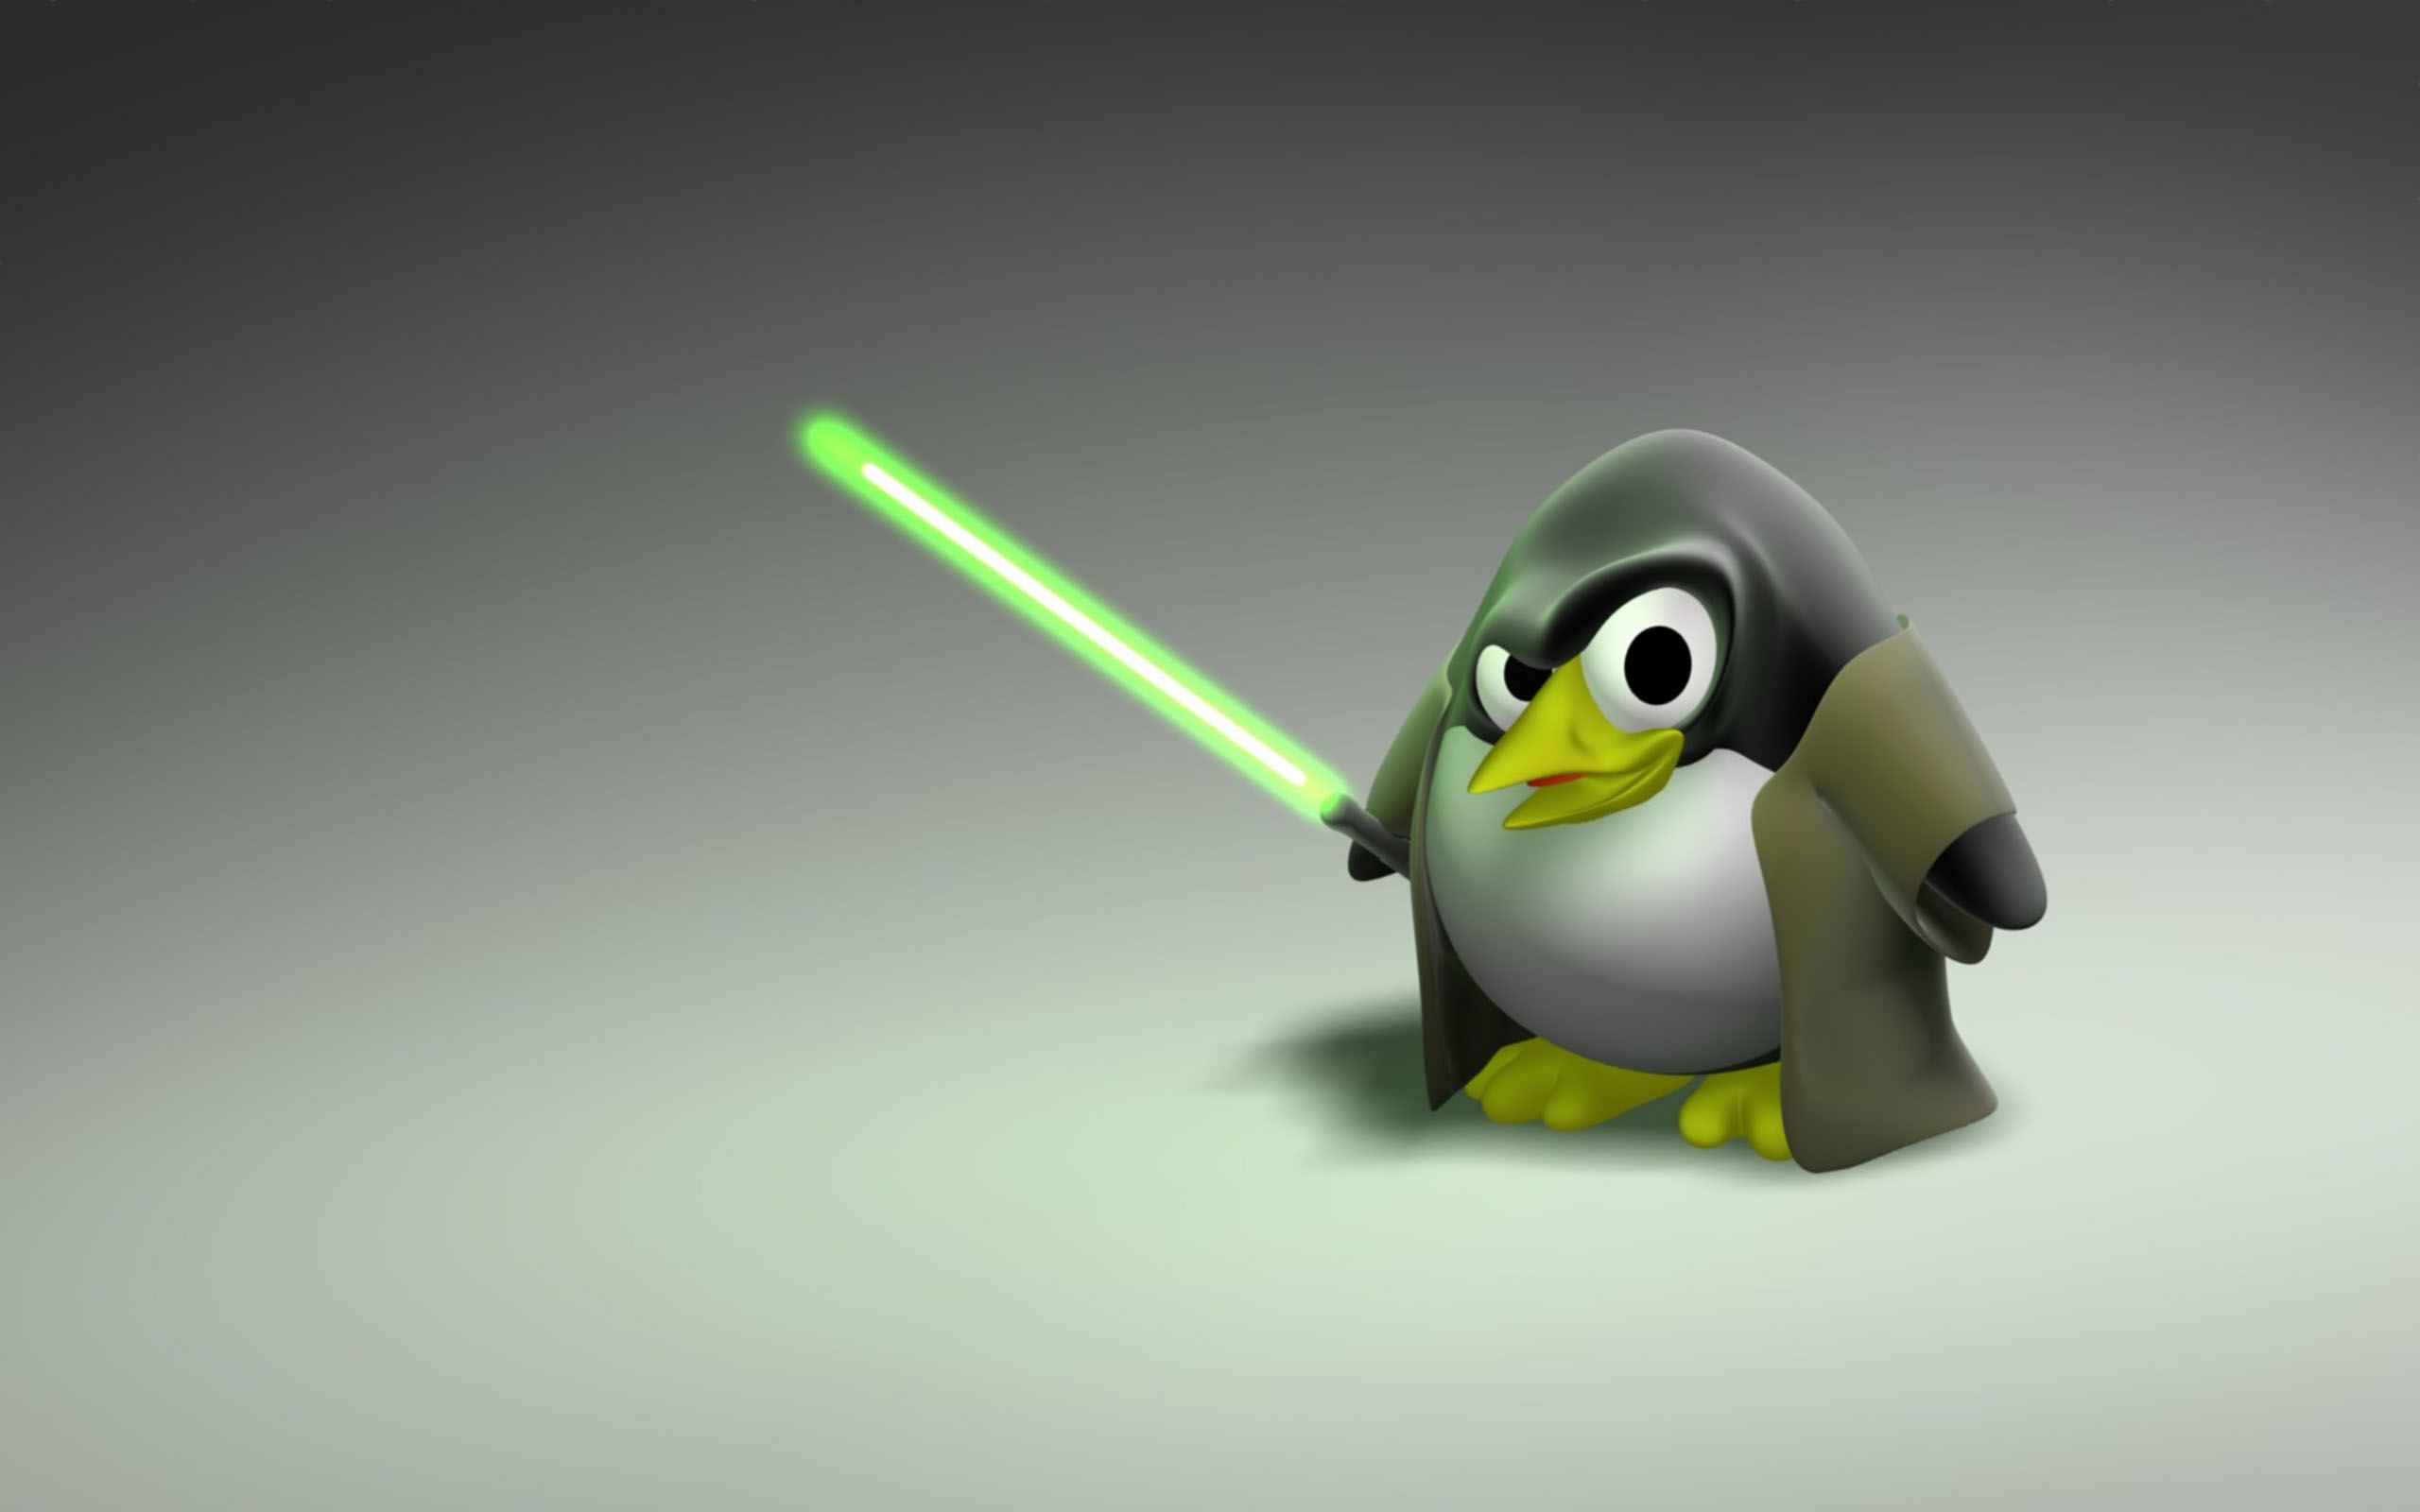 Download 45 Awesome Linux Wallpapers 2560x1600